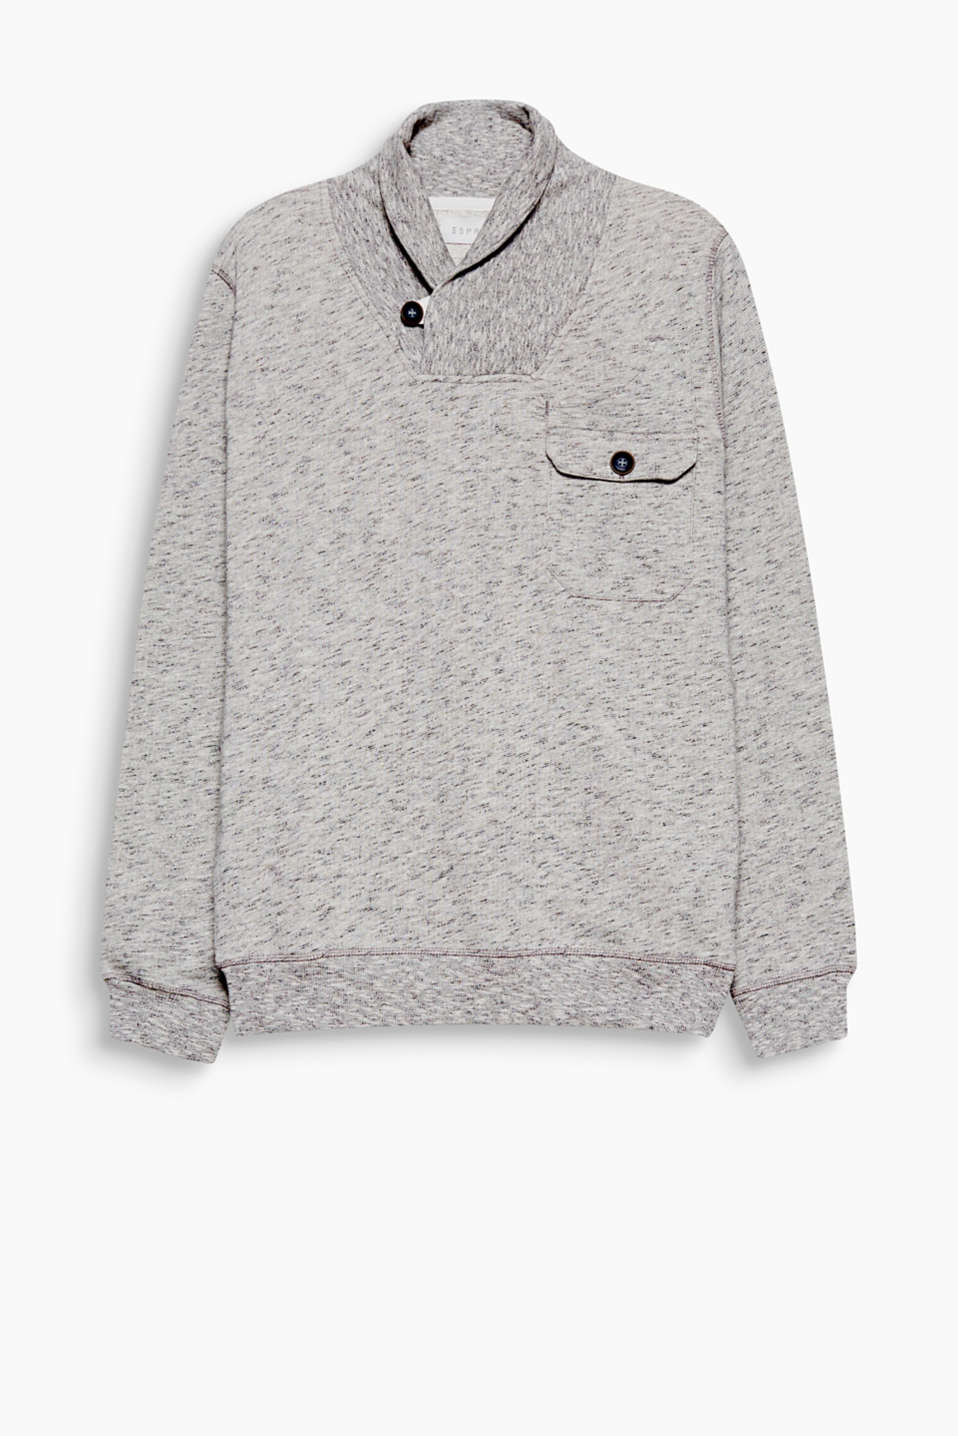 Sporty with a distinctive twist! The snug shawl collar and cool details make this sweatshirt absolutely awesome.